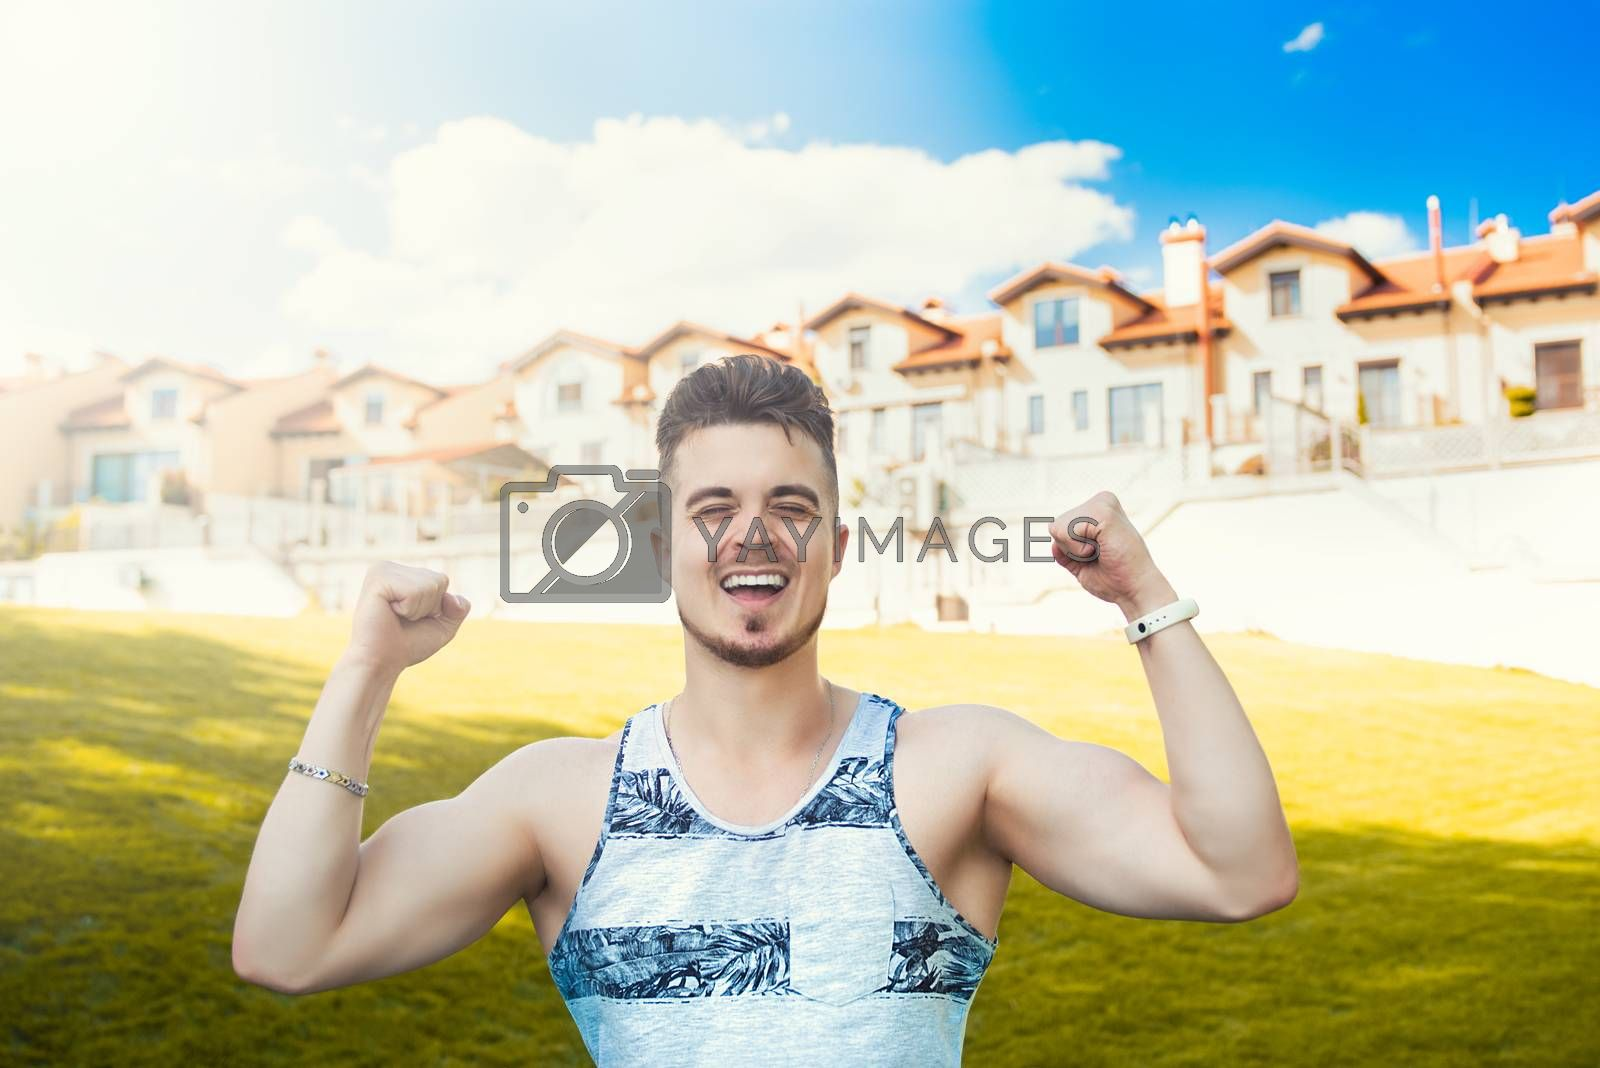 Expressive emotion. Attractive vacation. Happy young man got good news. beautiful cottages in the background.